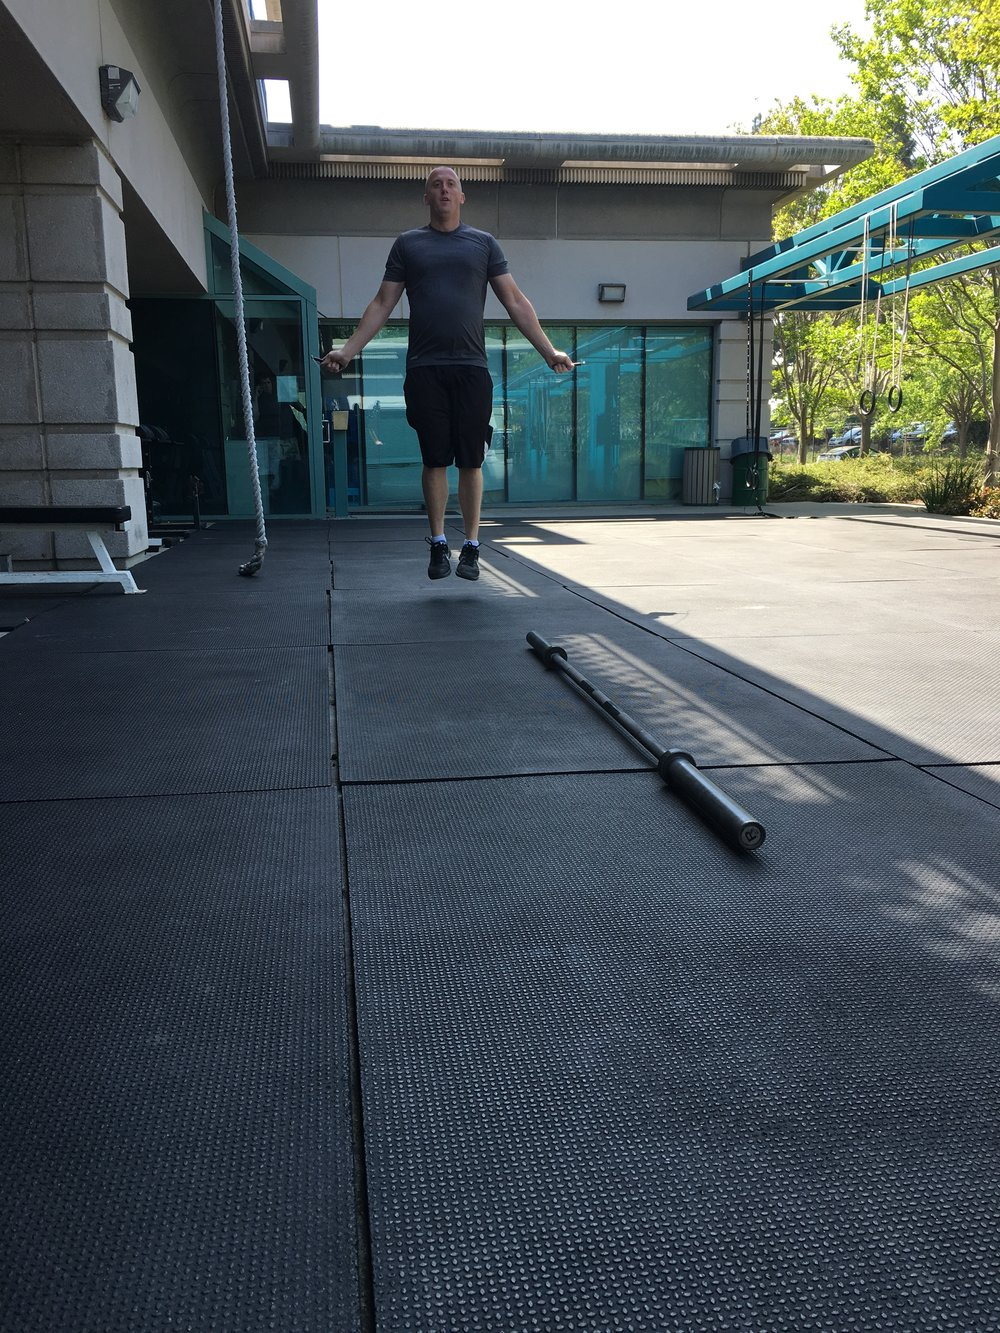 One of Fremont PD's finest giving todays workout a test run...